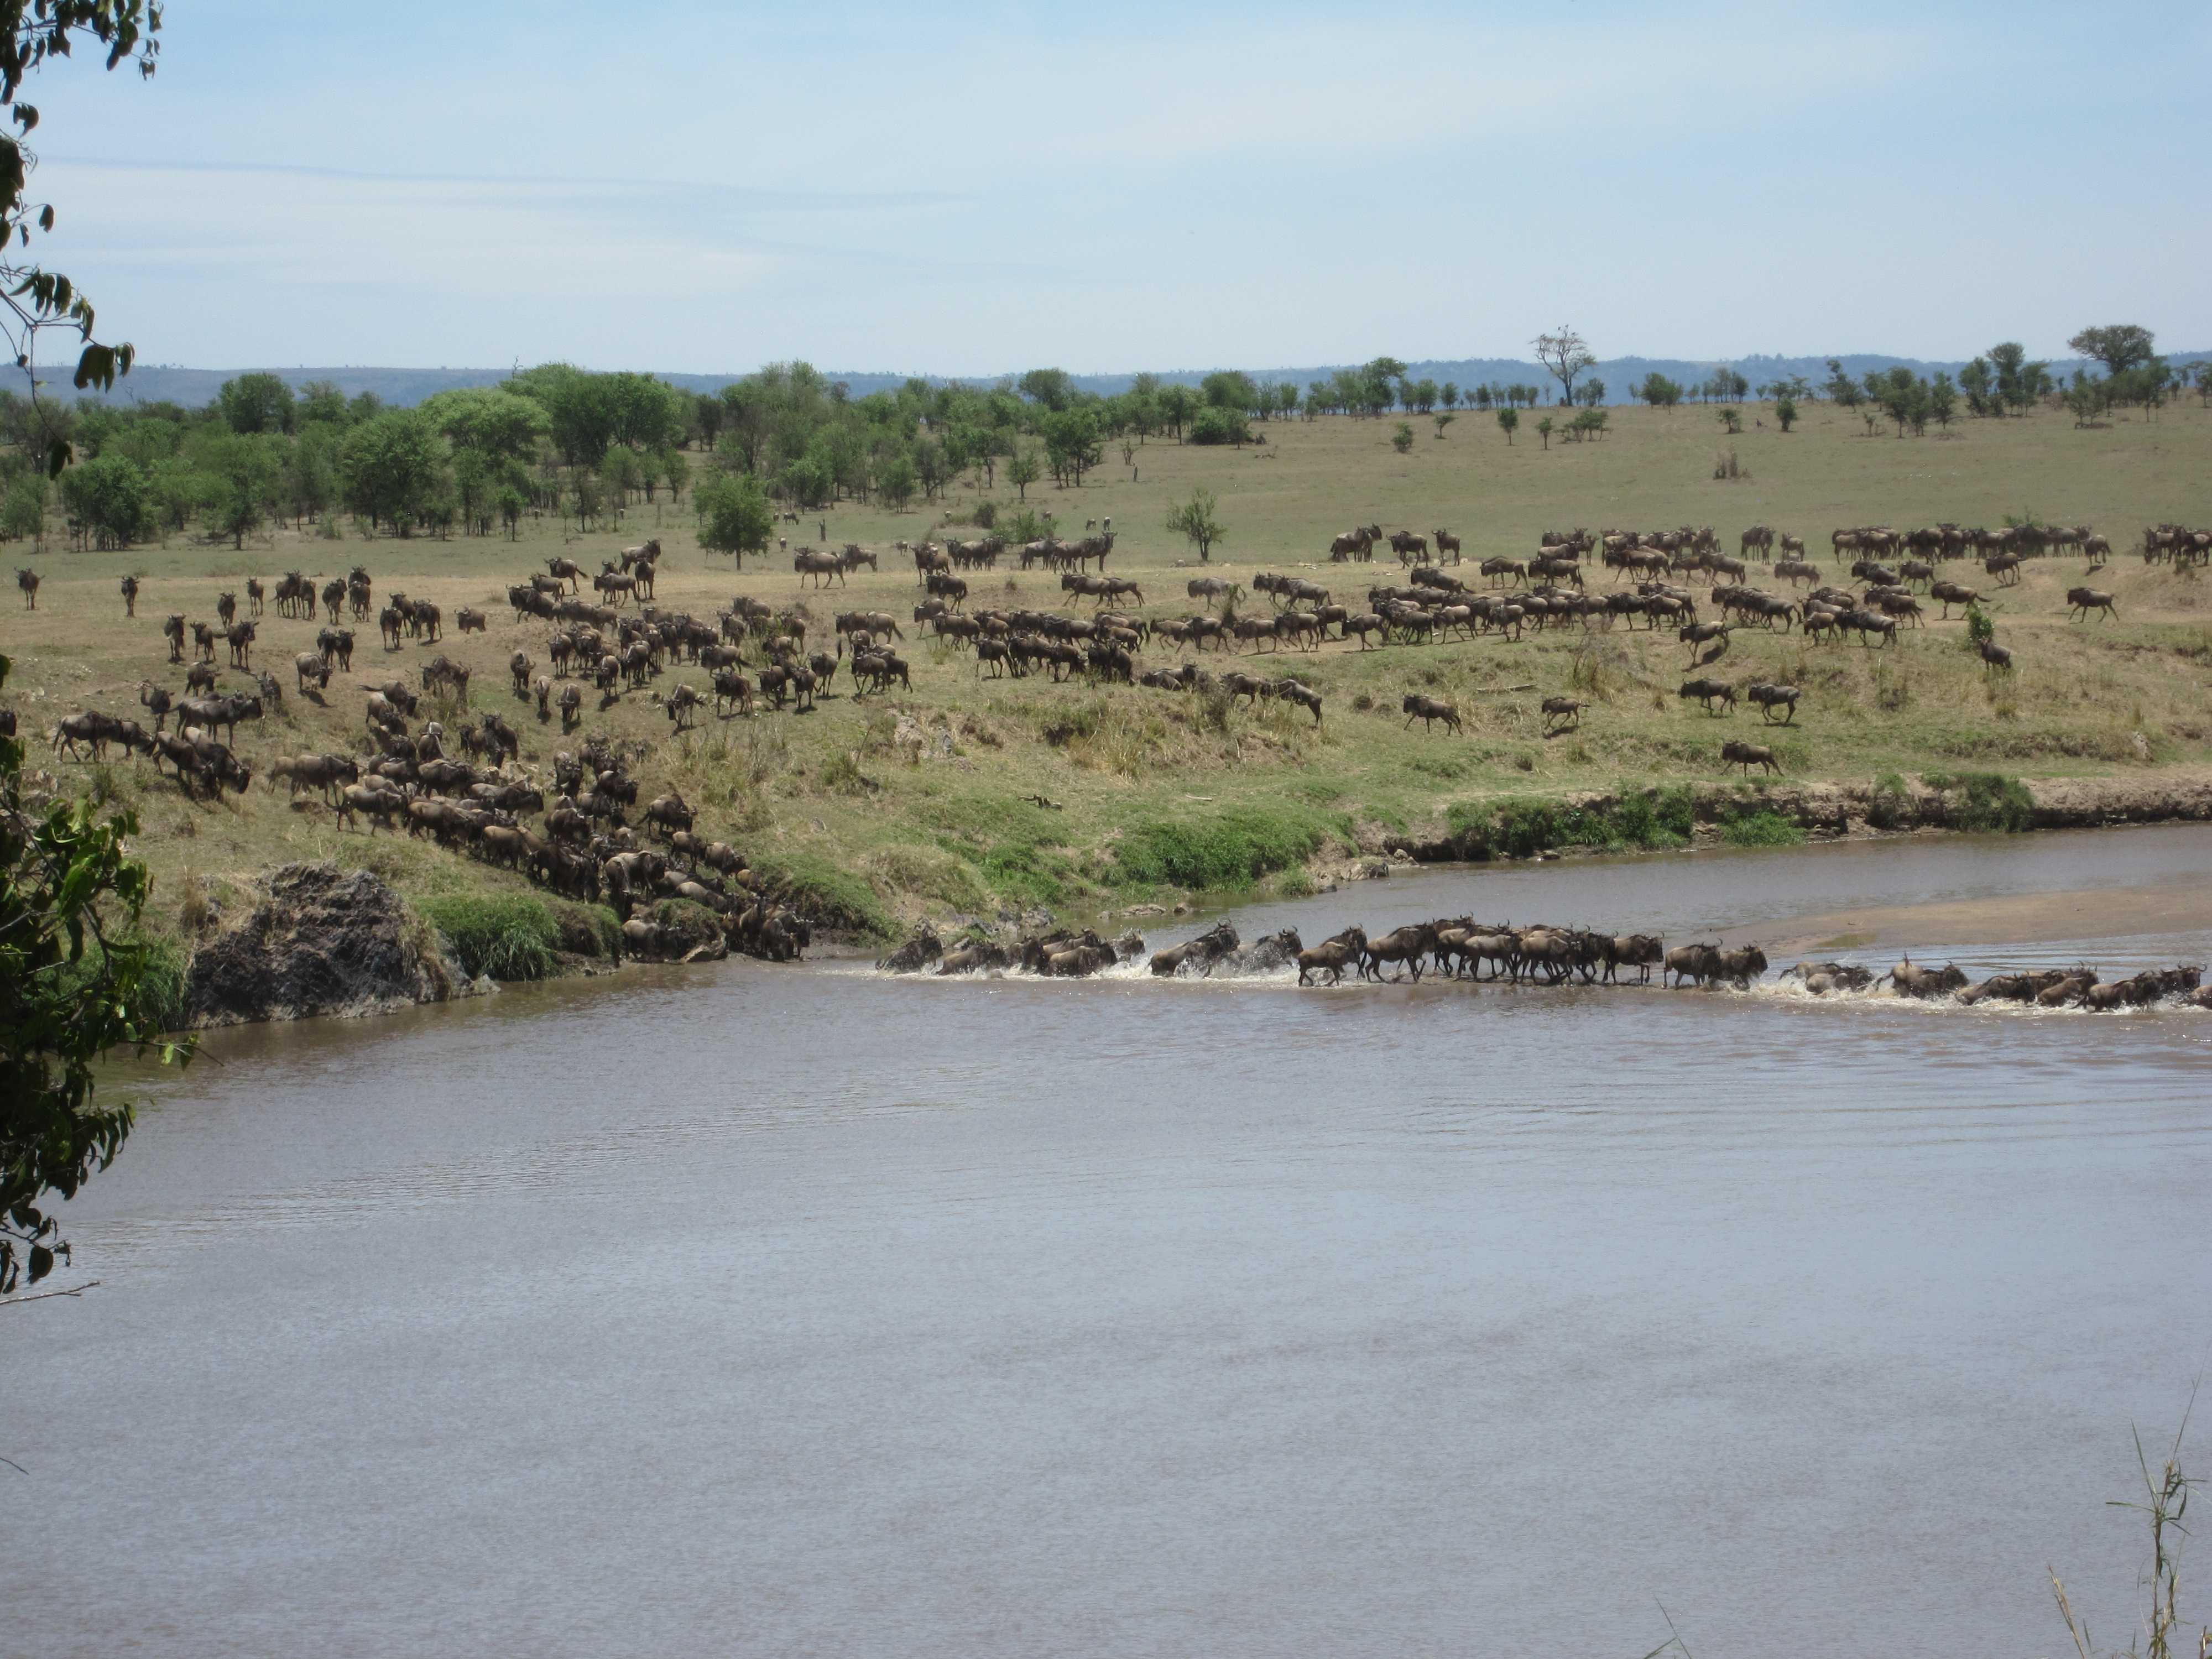 Wildebeest as far as they eye can see